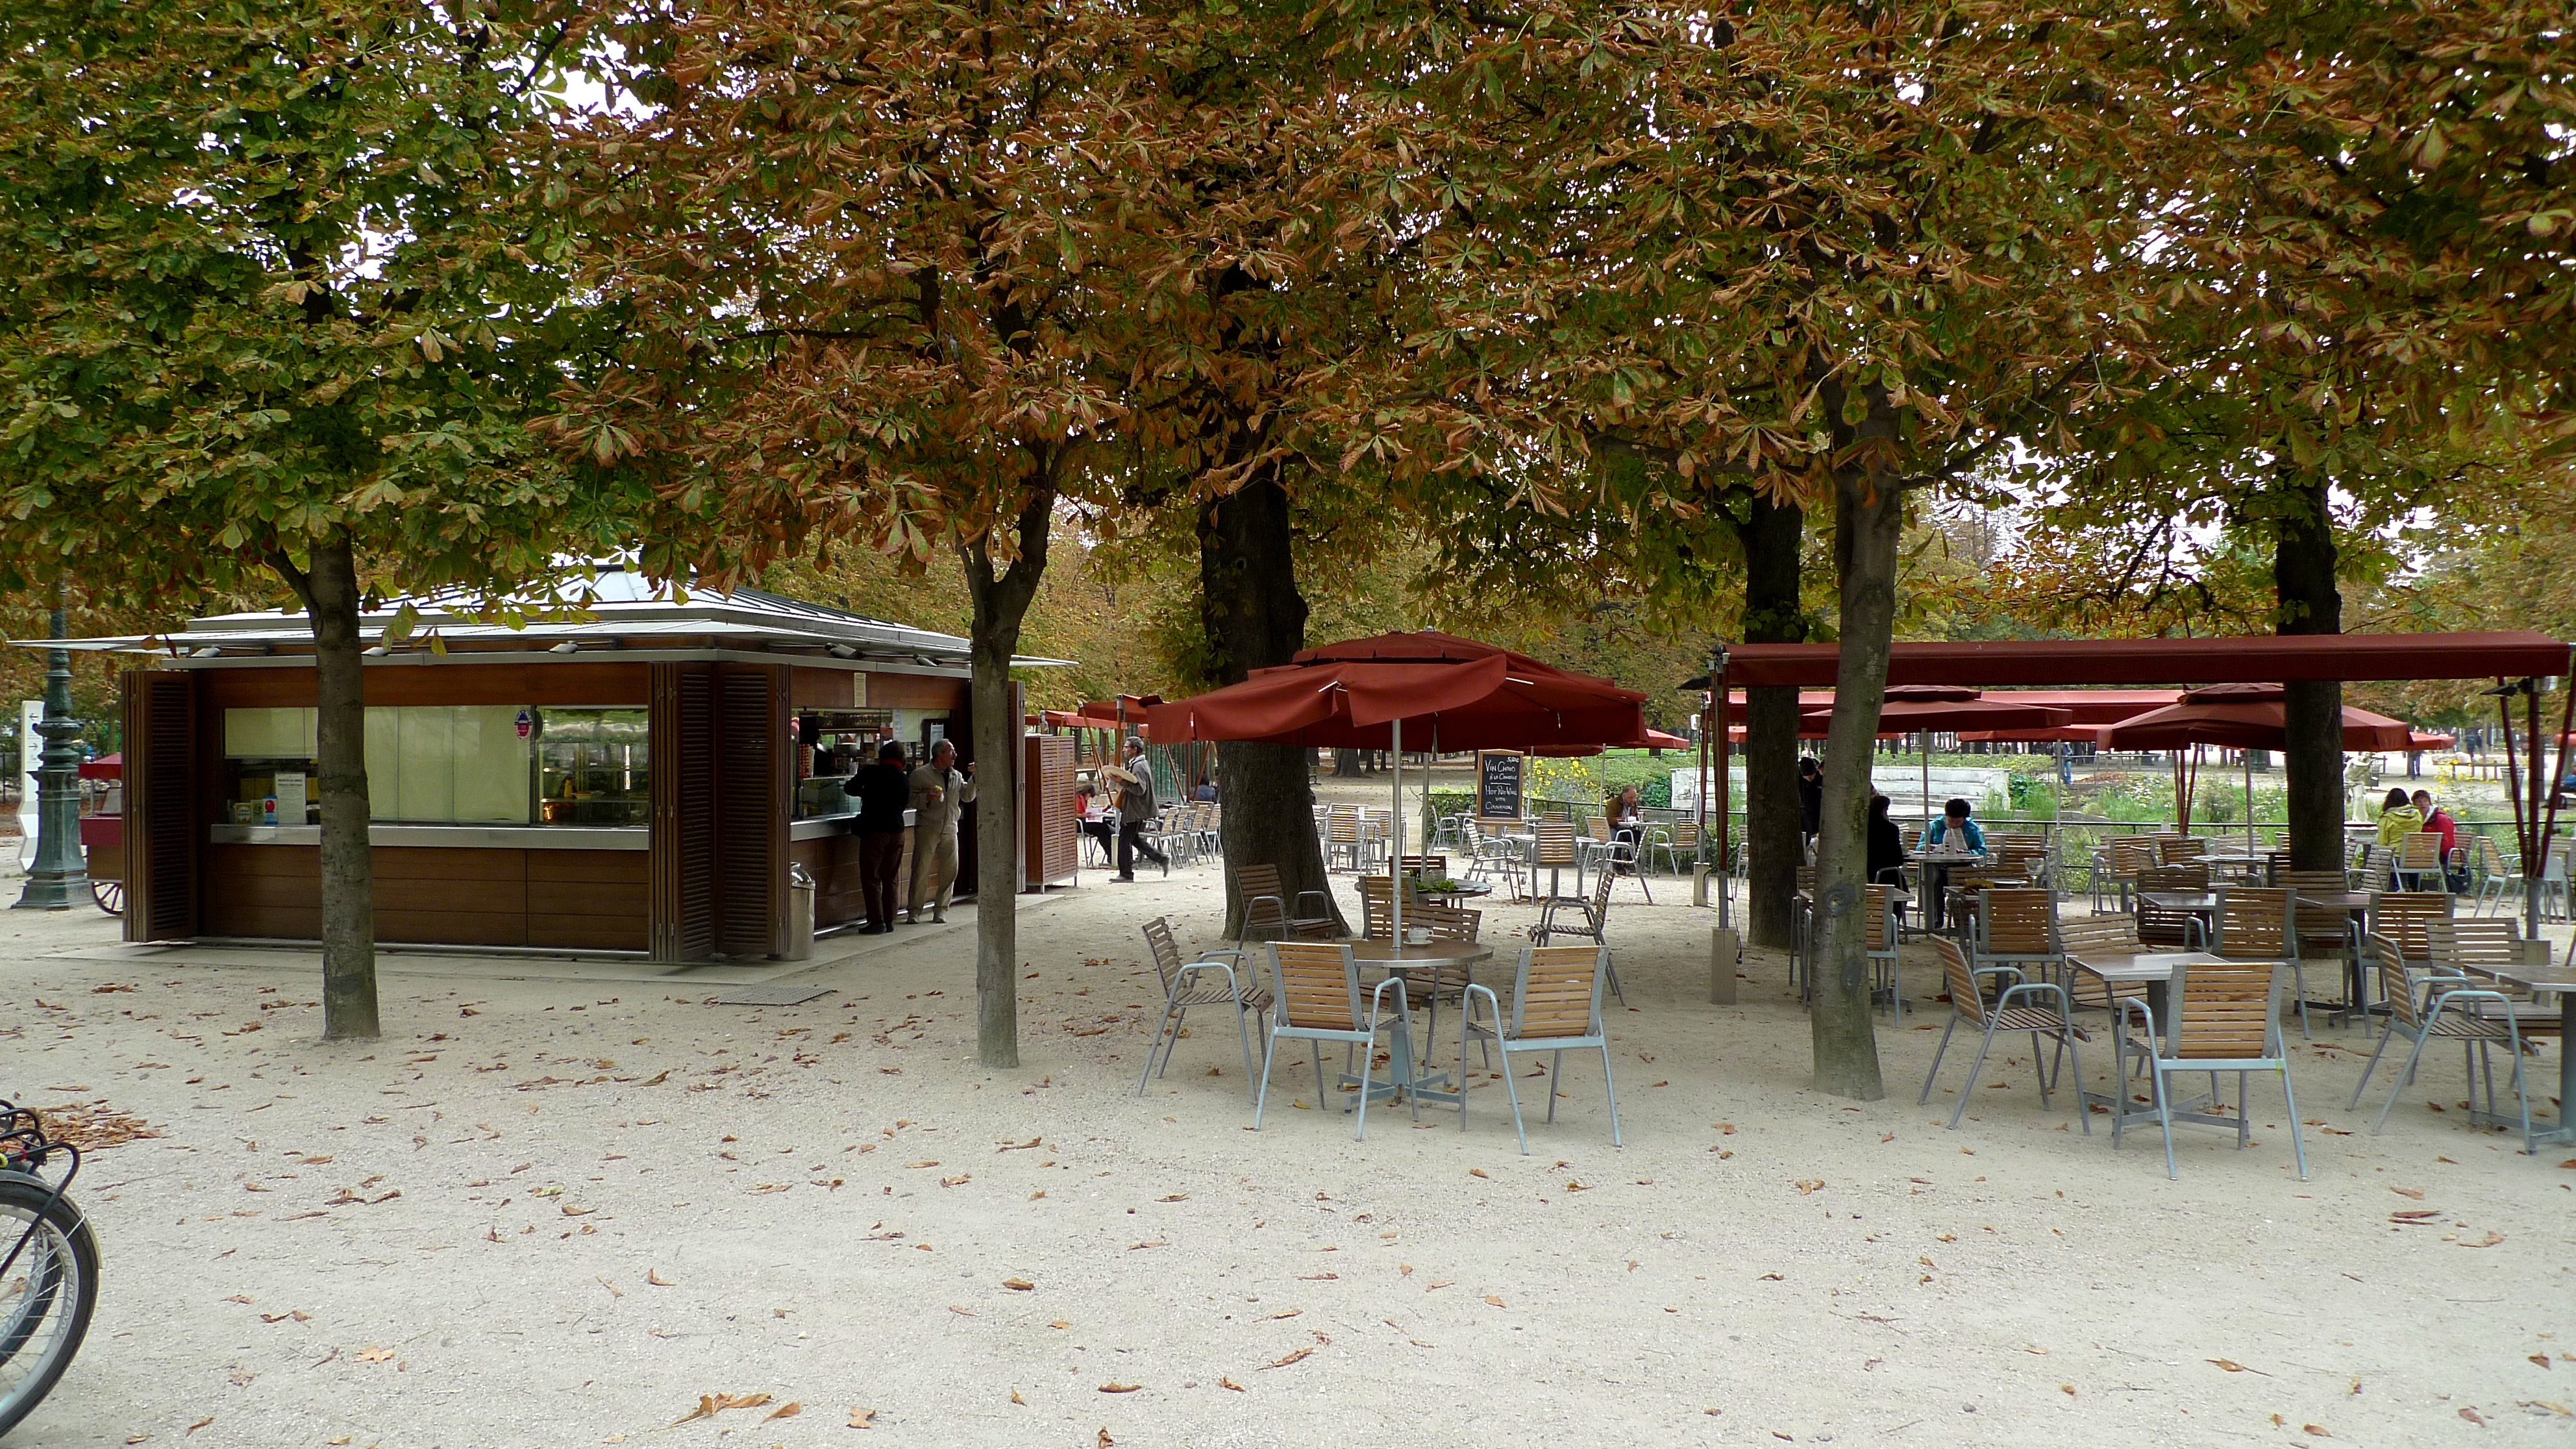 MyFrenchLife™ – MyFrenchLife.org - How to sound French - what not to say - Café Tuileries